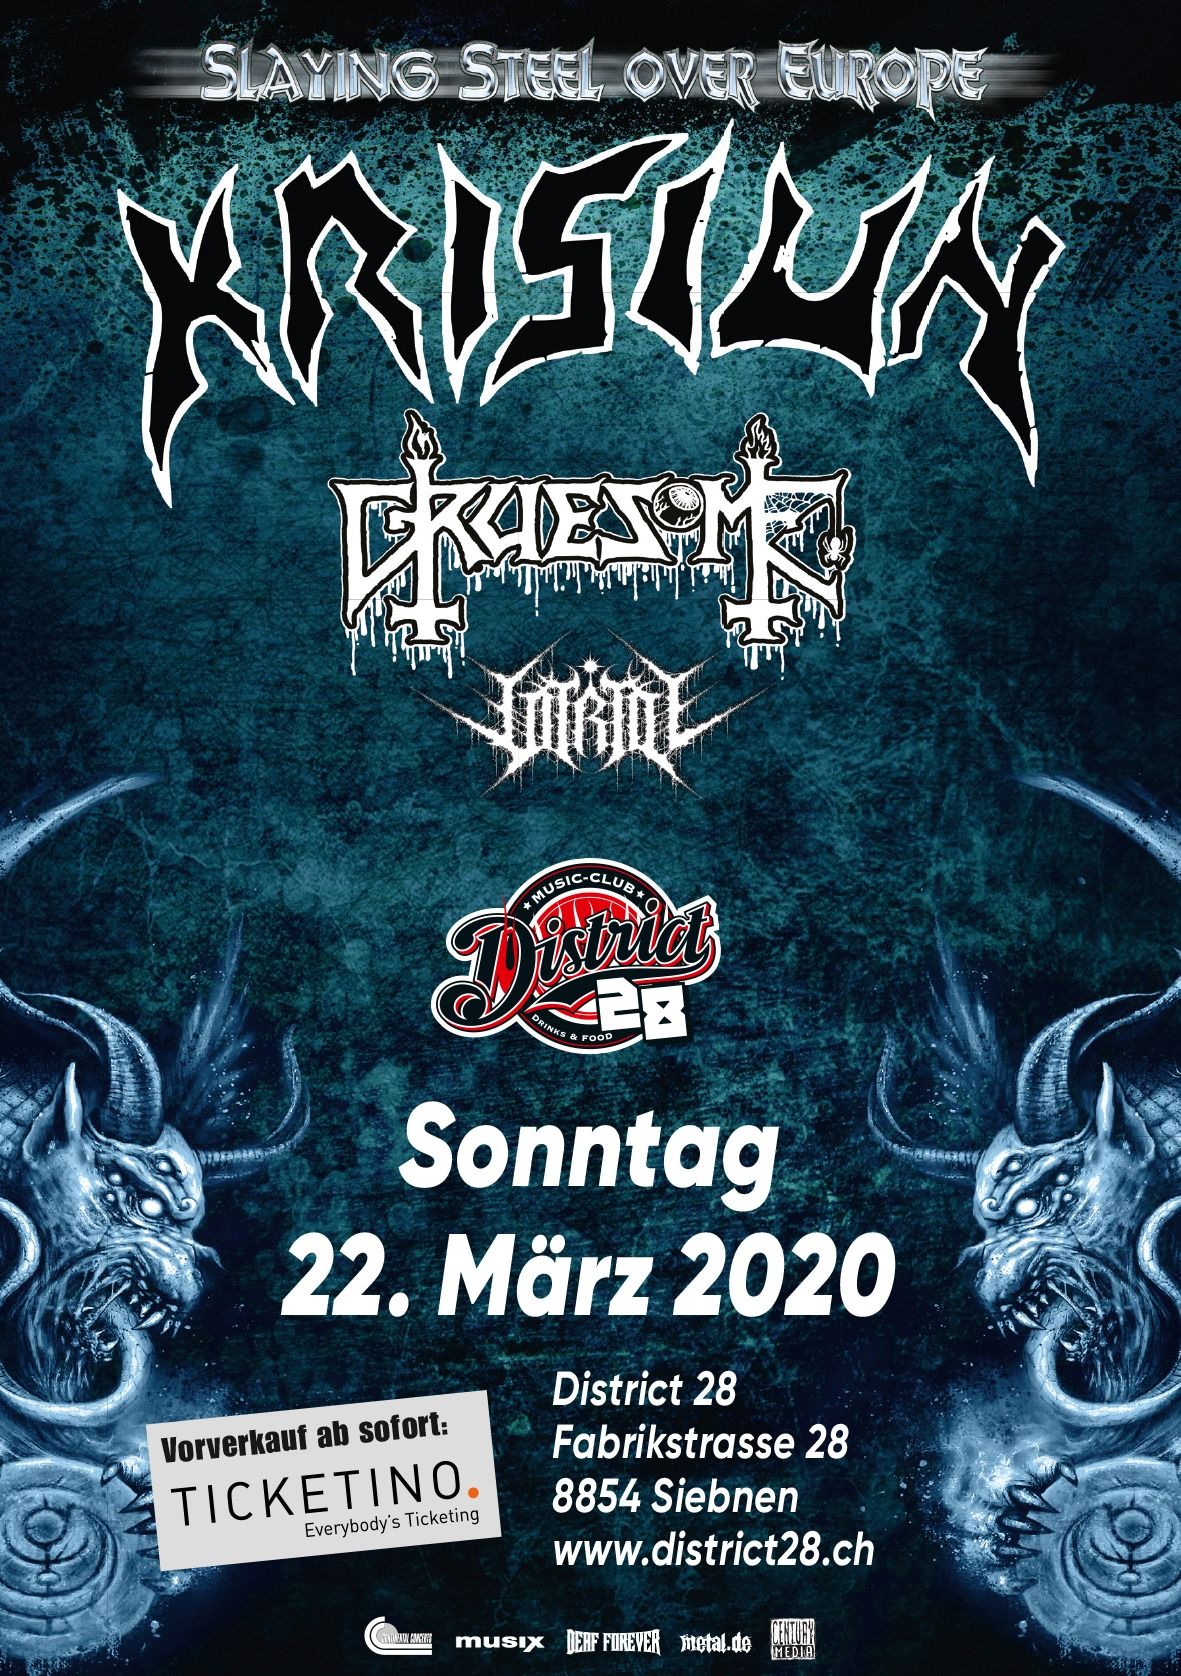 KRISIUN (BRA), CRUESOME (USA) & VITRIOL (USA) – Exclusive Swiss show